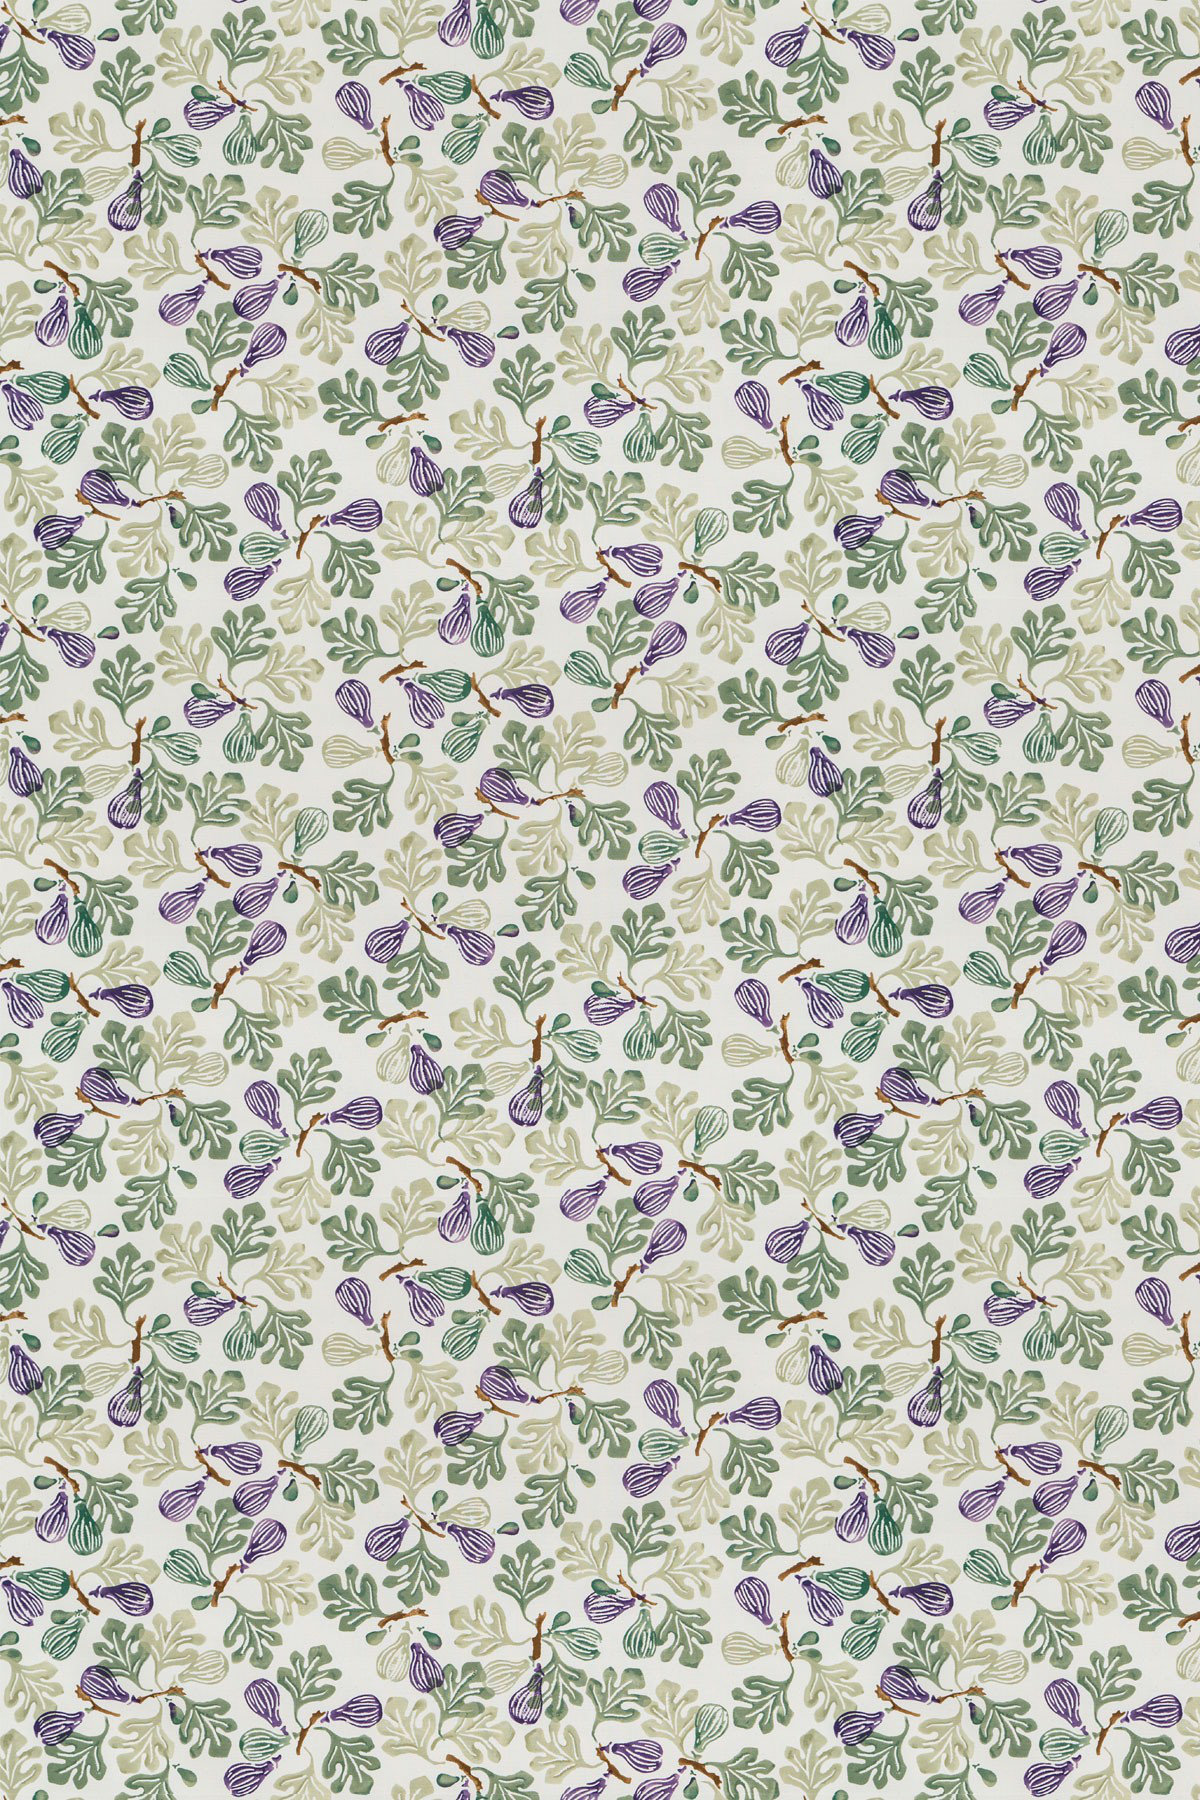 Image of Emma Bridgewater Fabric Figs Purple/Green, 223428